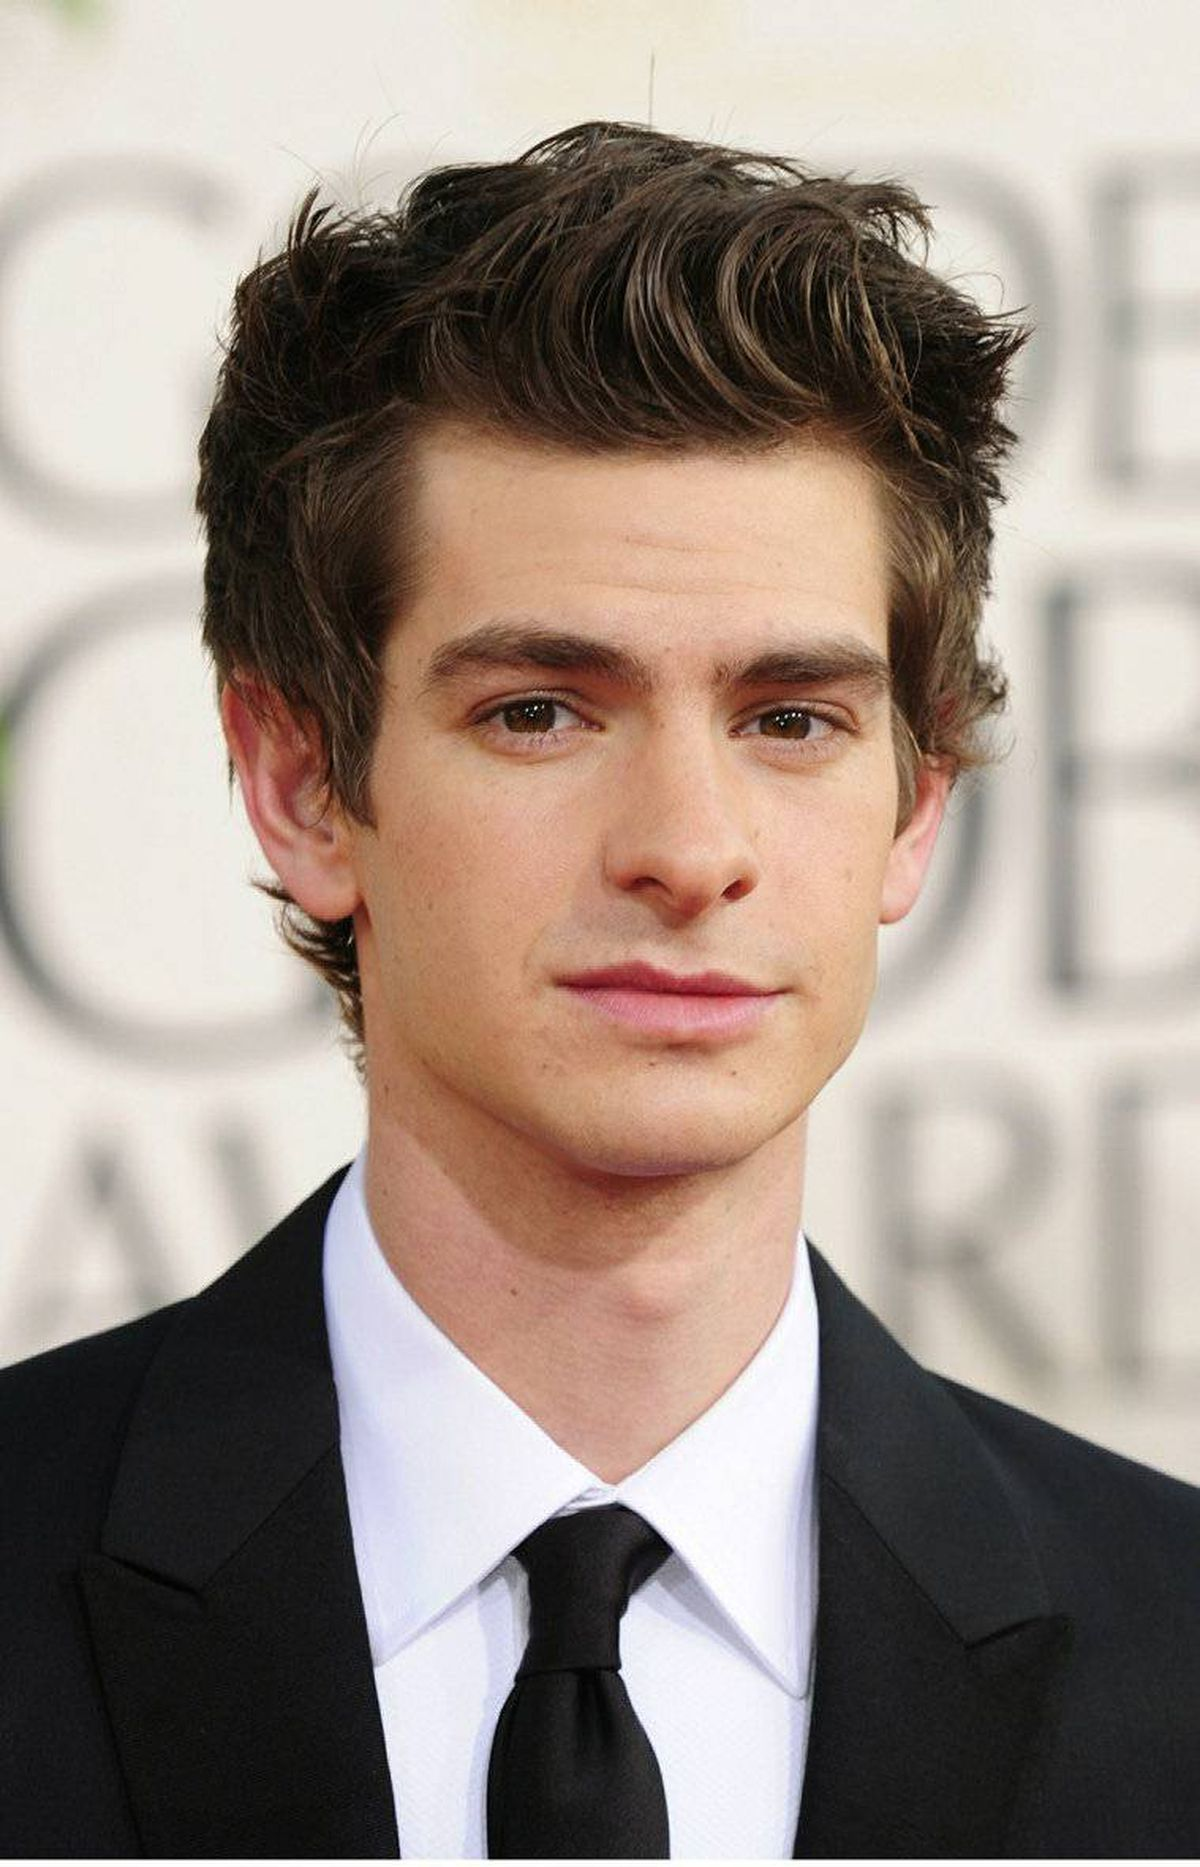 Andrew Garfield: Star on the rise